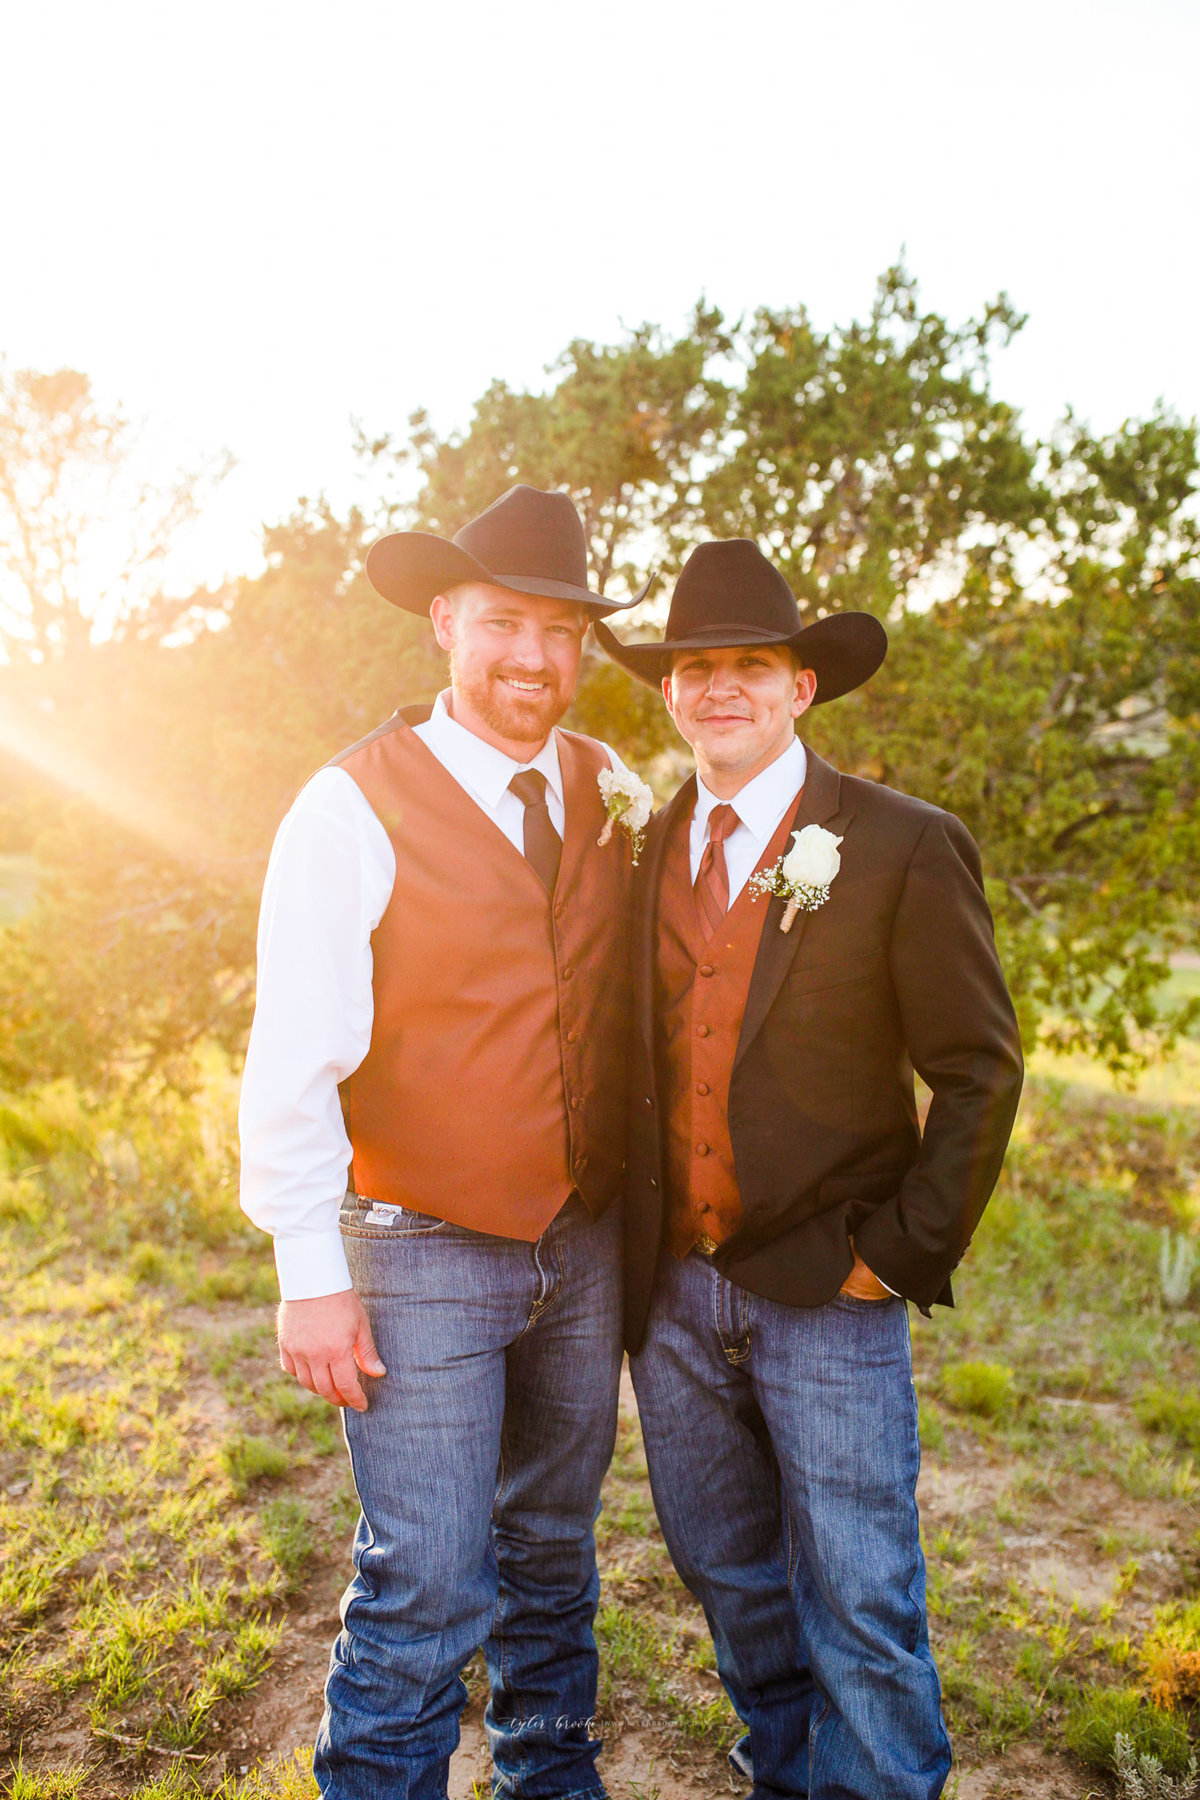 Edgewood-New-Mexico_Country-Wedding-Photographer_www.tylerbrooke.com_Kate-Kauffman-28-of-35